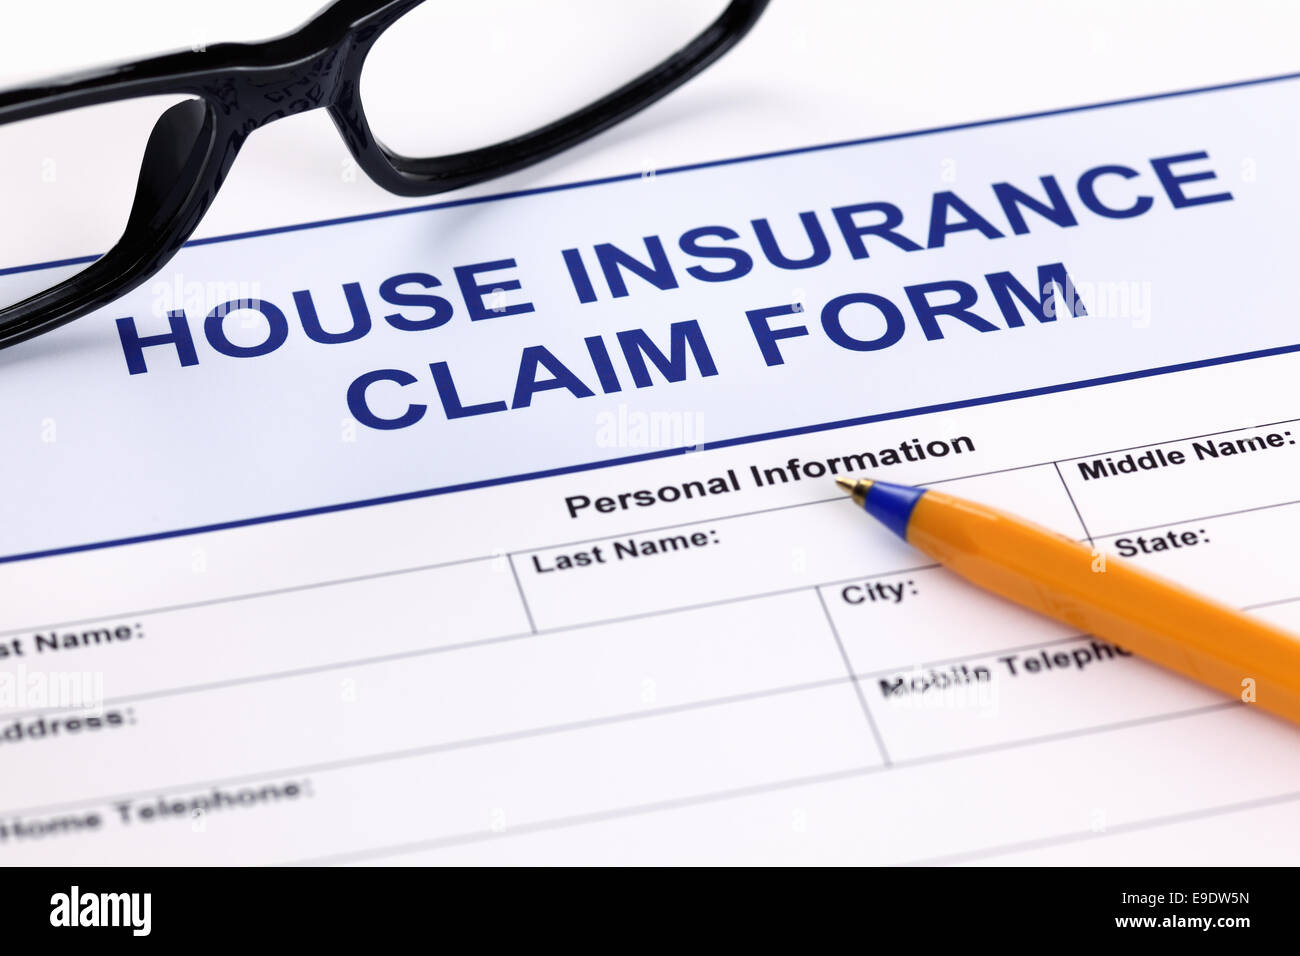 House insurance claim form with glasses and ballpoint pen. - Stock Image